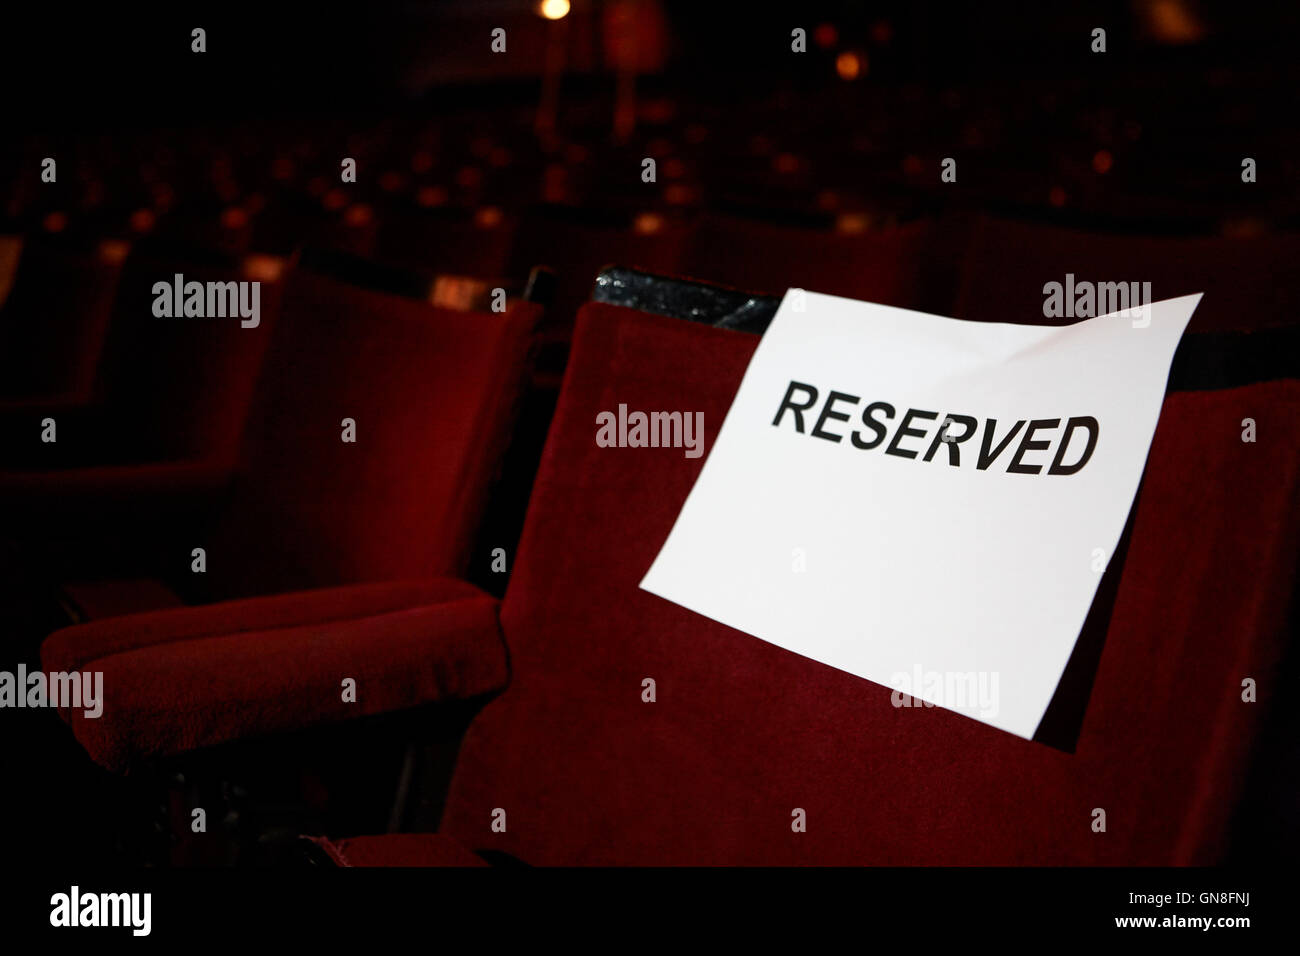 reserved sign on a seat in a row of seats in the stalls of an old style theatre - Stock Image